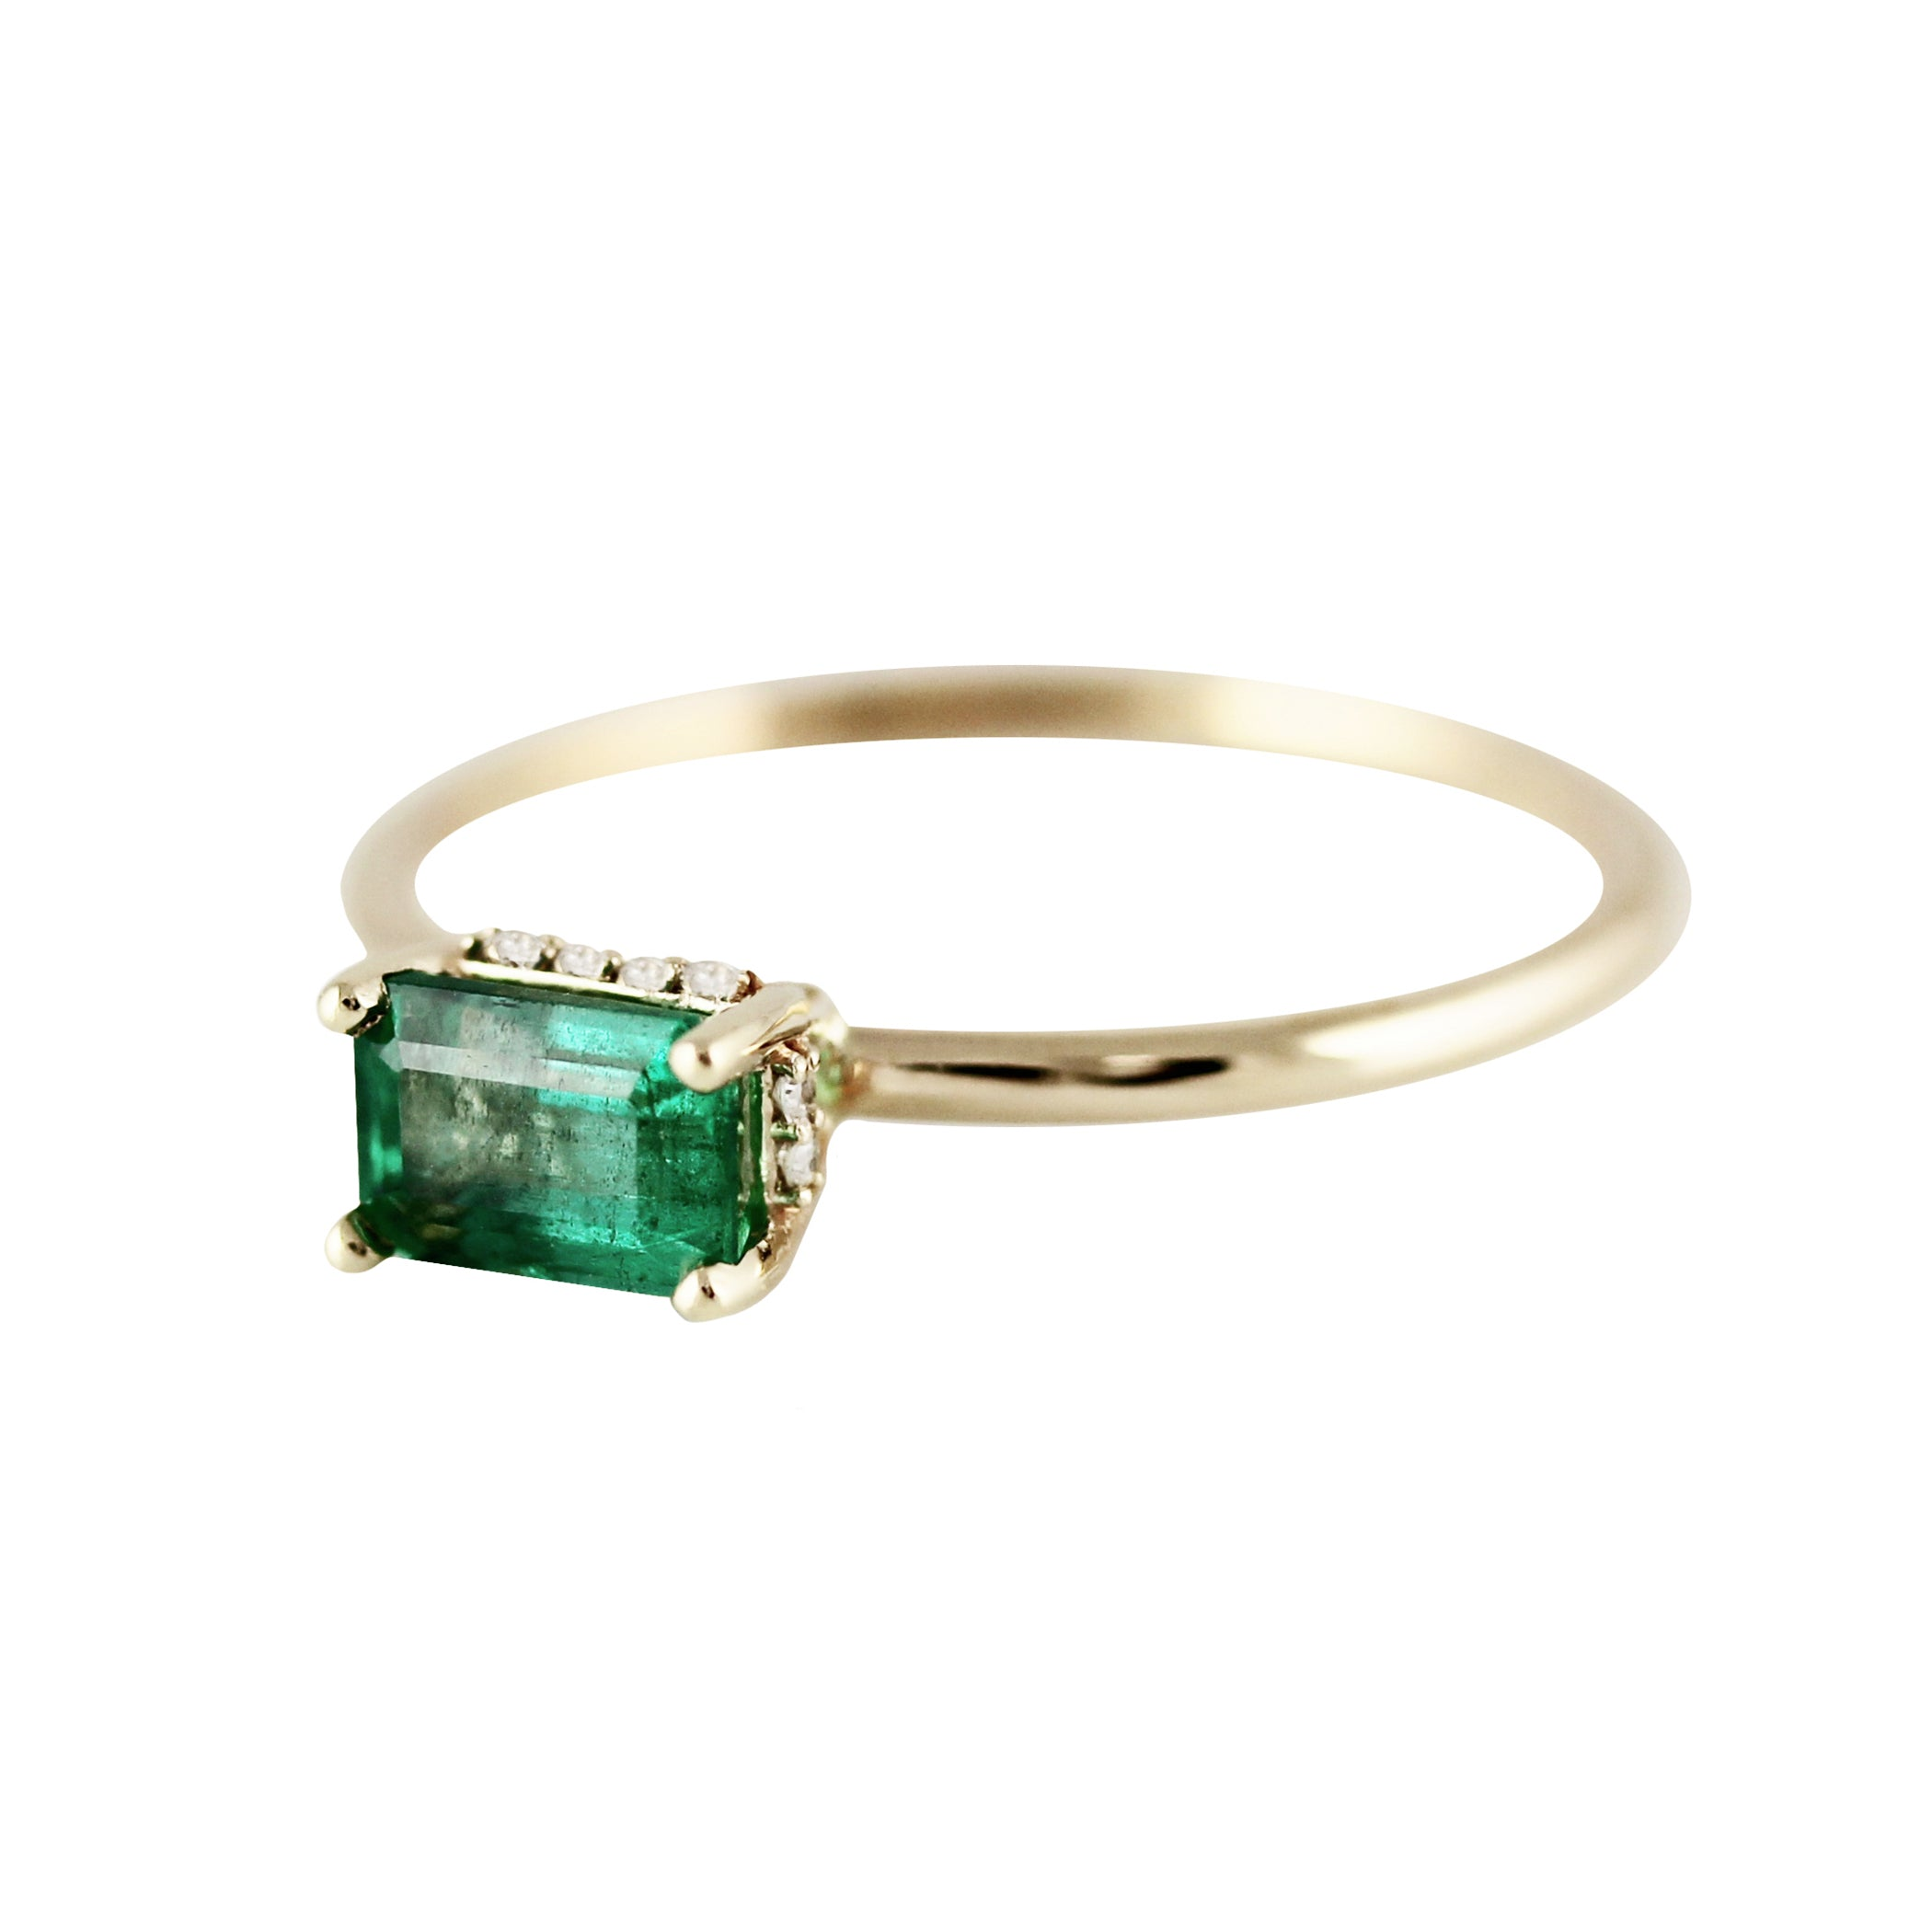 6X4 EMERALD WITH SIDE DIAMONDS HALO RING